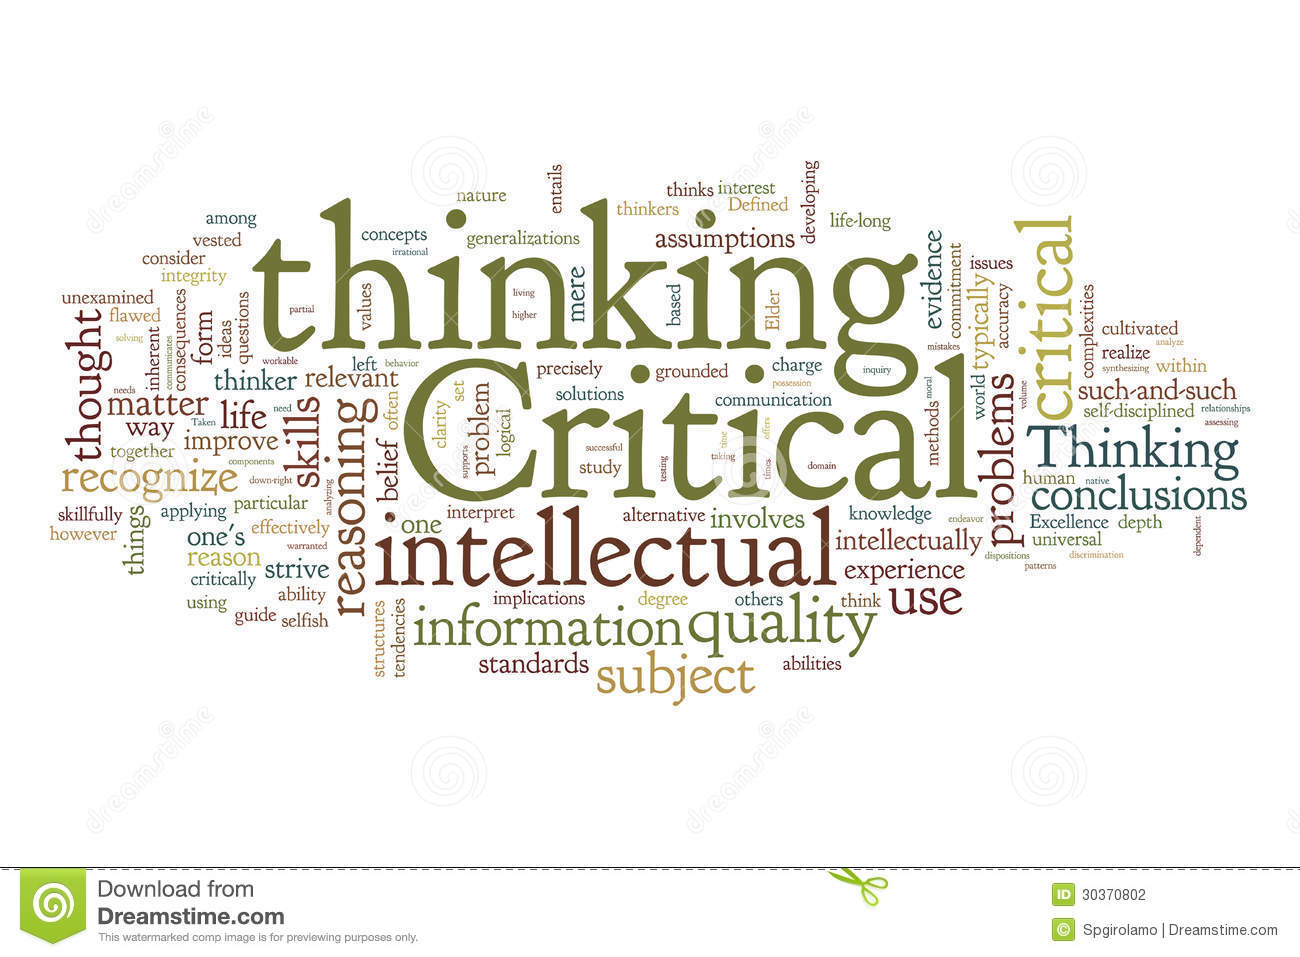 fundamentals of critical thinking skills The basics of critical thinking students who successfully complete this book will have a fundamental set of critical thinking skills they can use their entire lives.